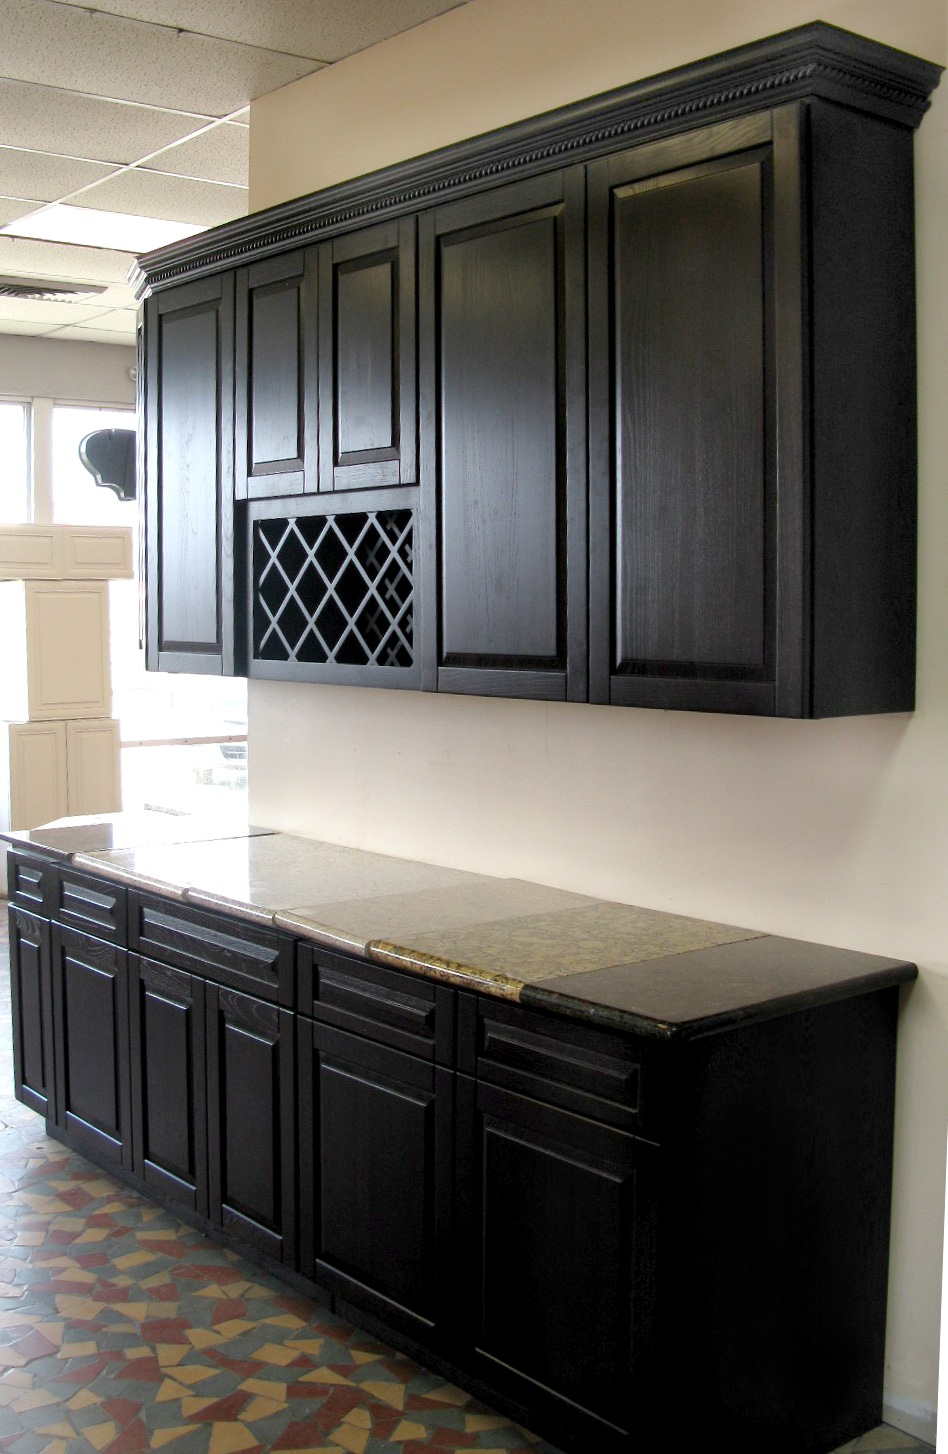 Cabinets for kitchen photos black kitchen cabinets for Small kitchen black cabinets